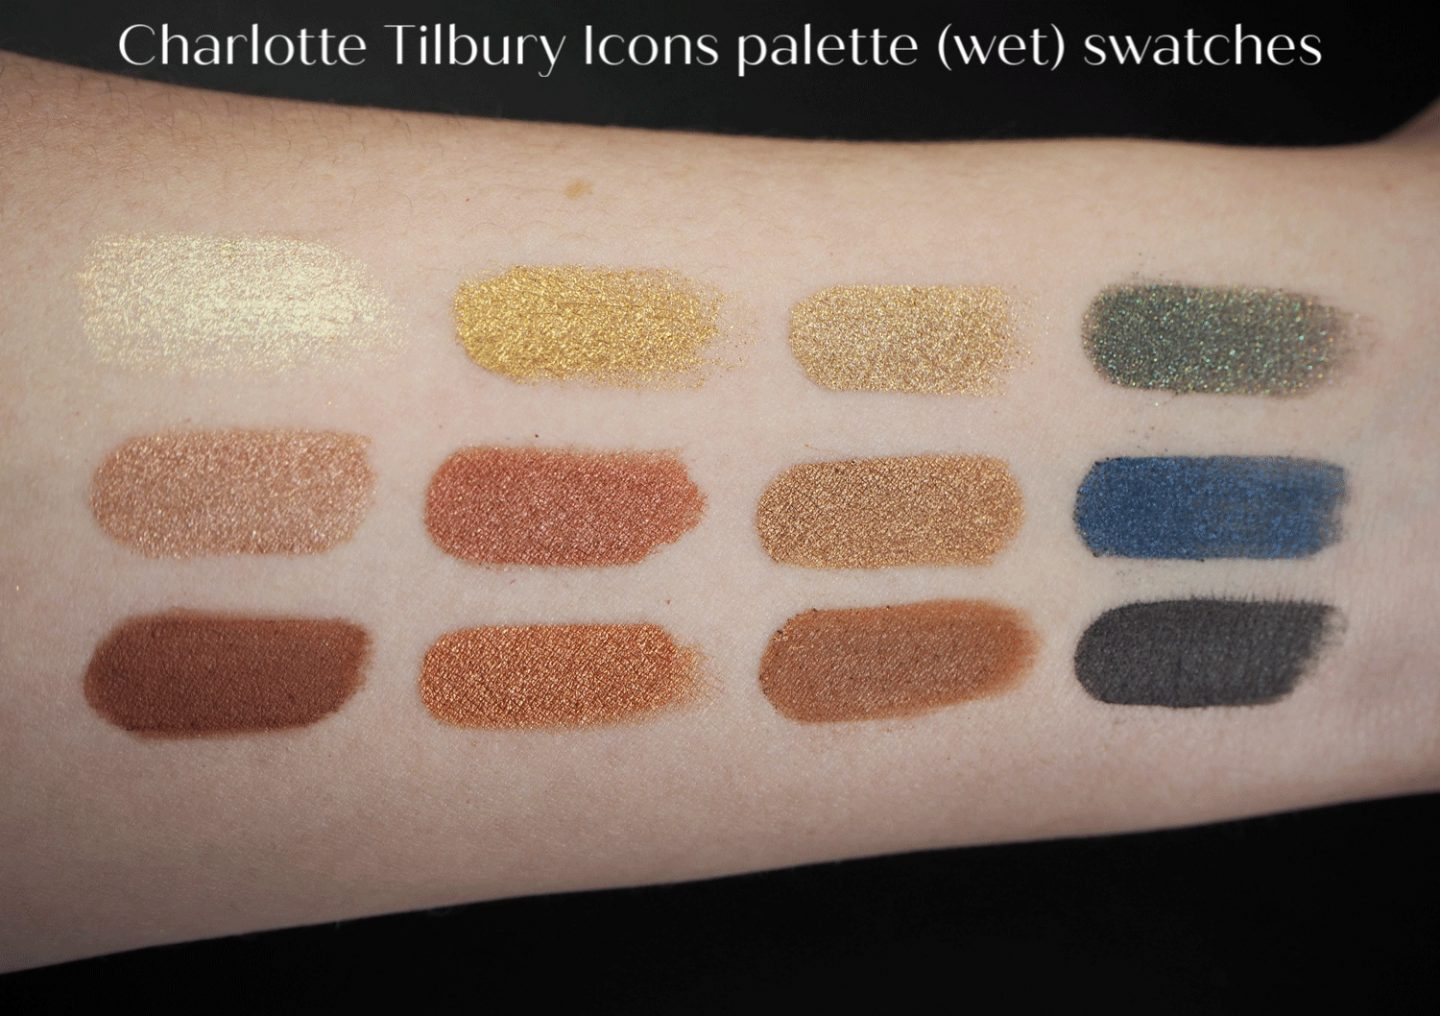 Charlotte Tilbury icons eyeshadow palette wet swatches